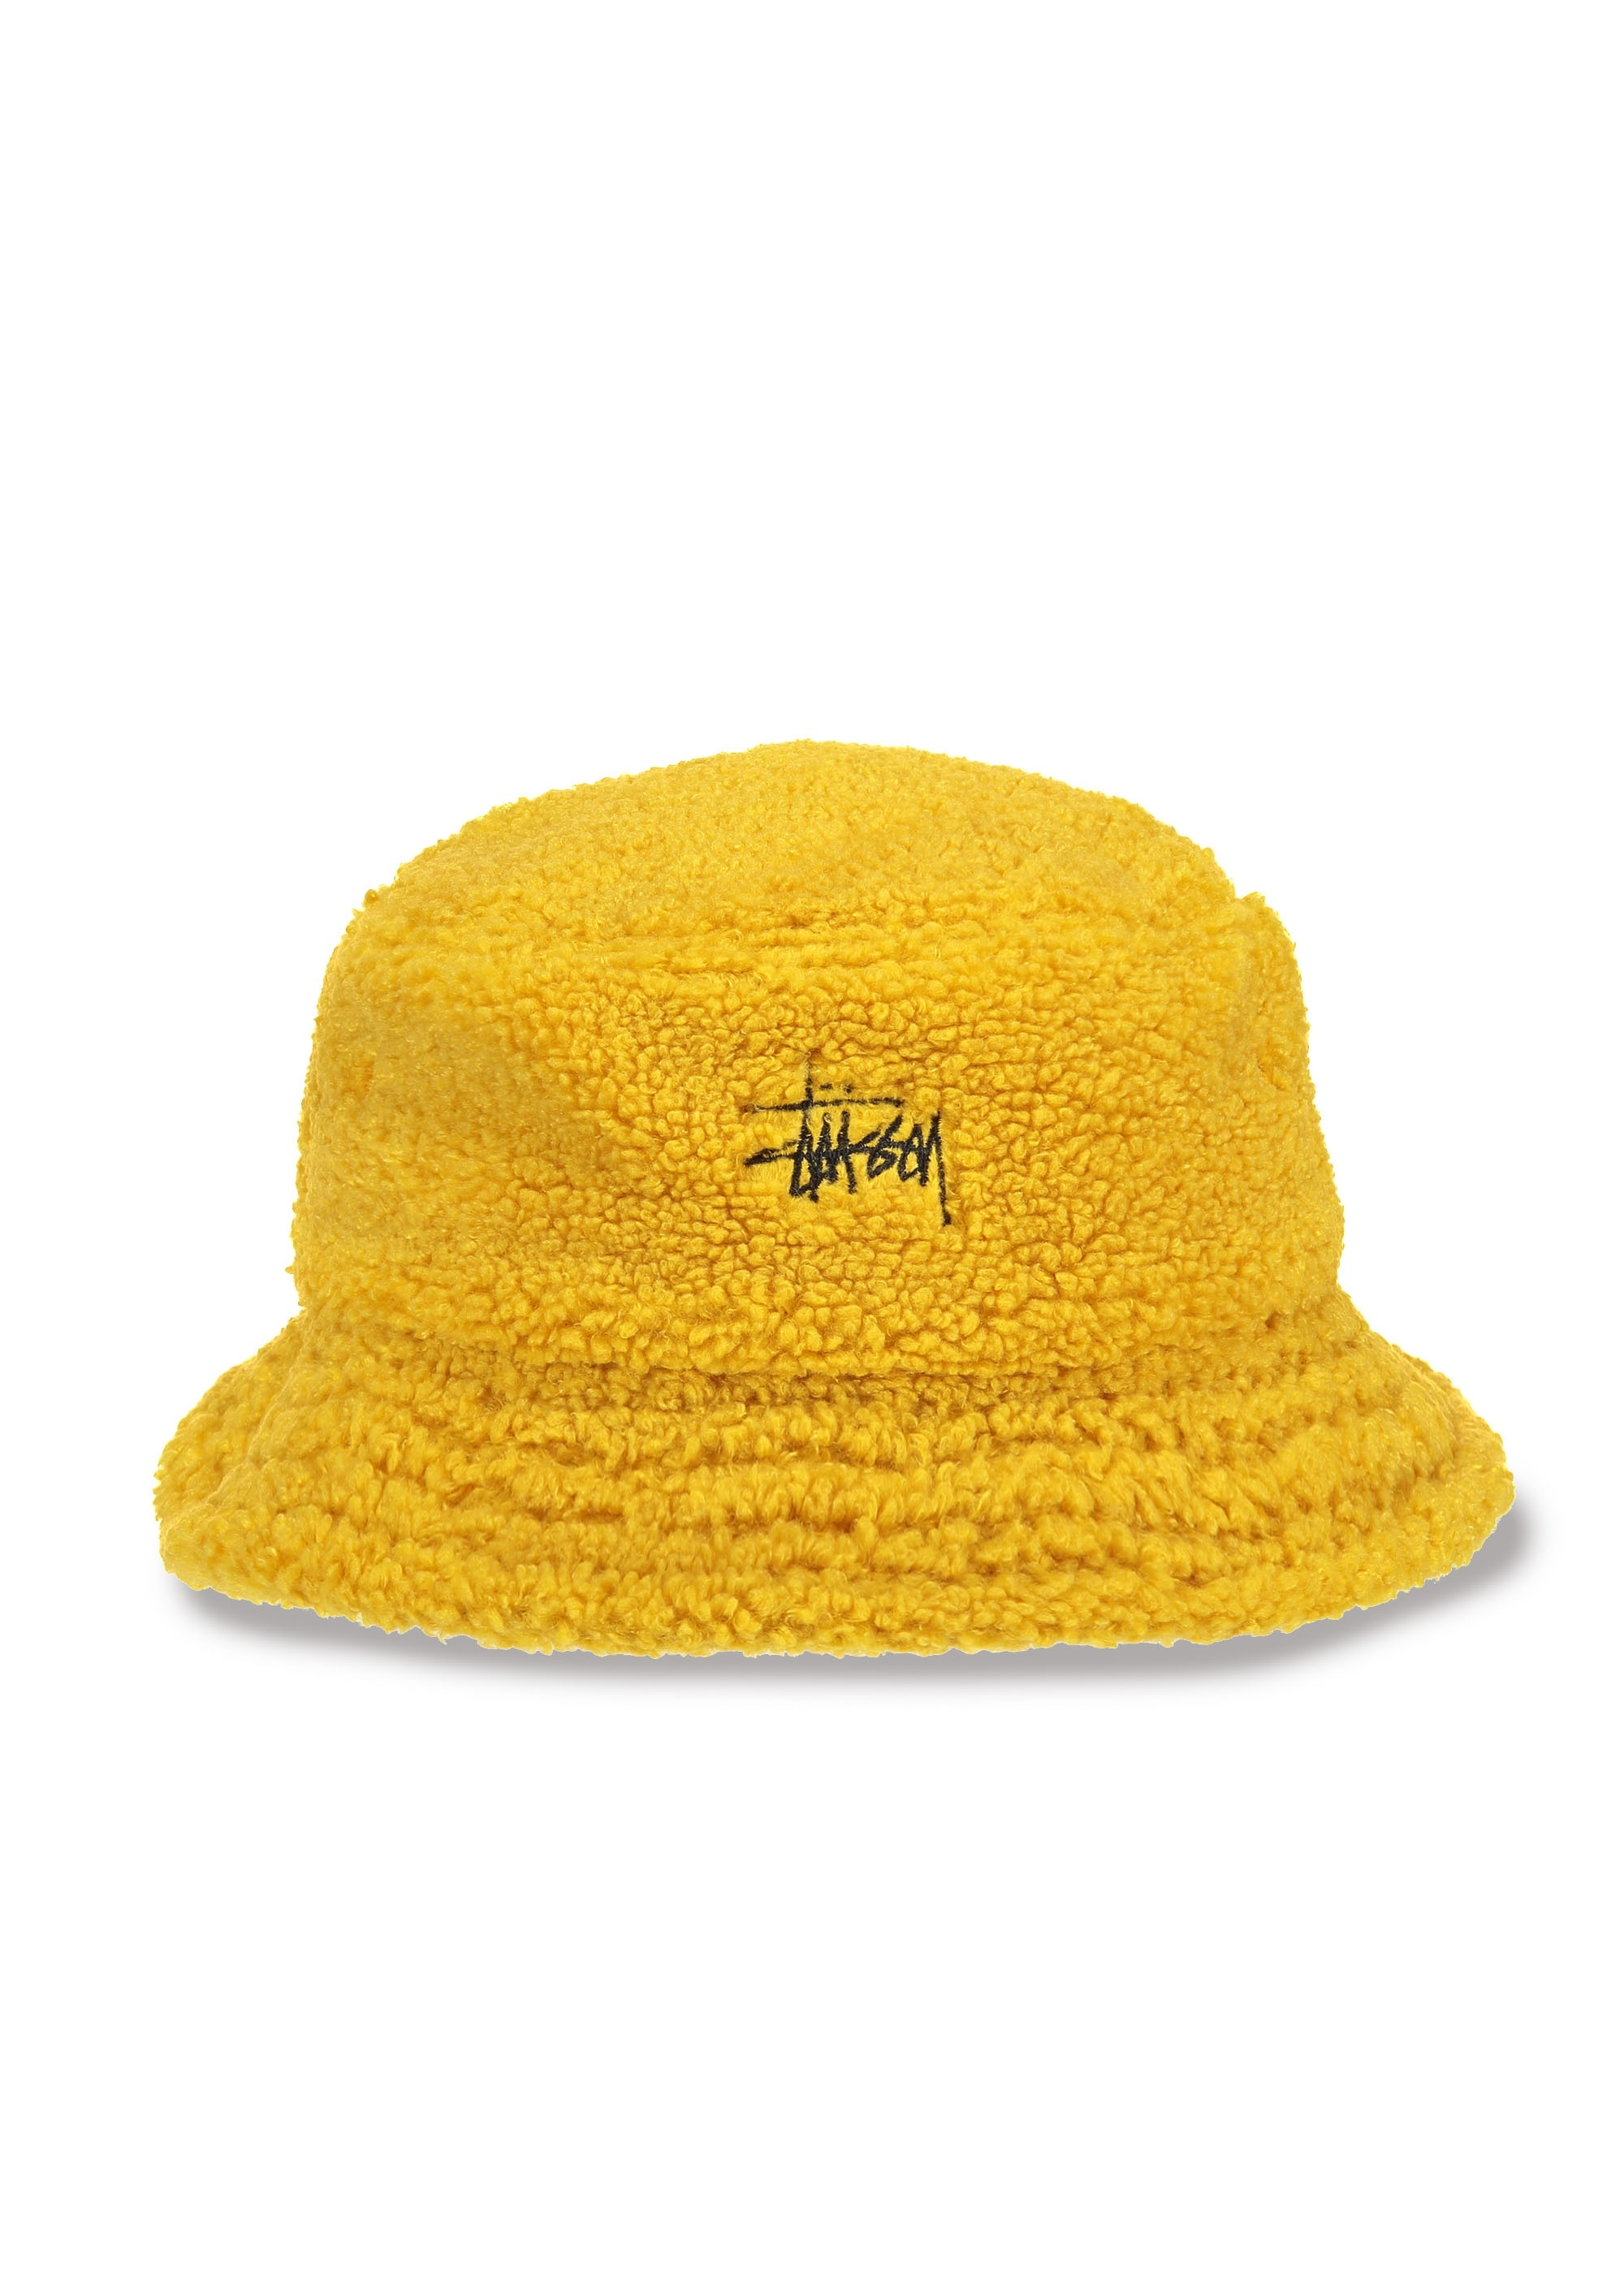 Stussy Sherpa Fleece Bucket Hat - Yellow - Headwear from Triads UK 13ef07372ab